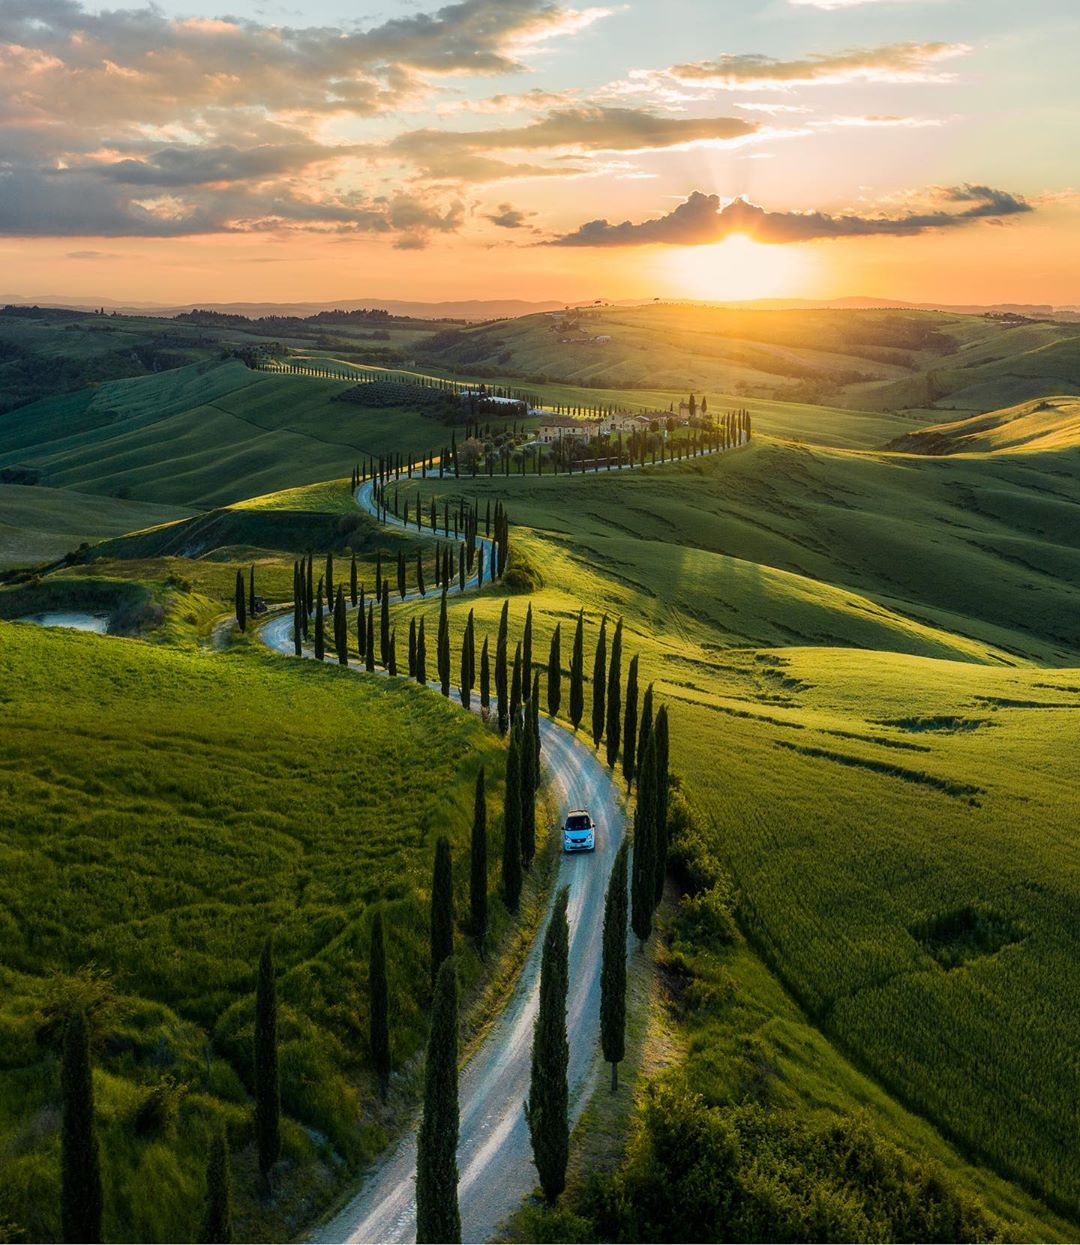 The roads of Tuscany